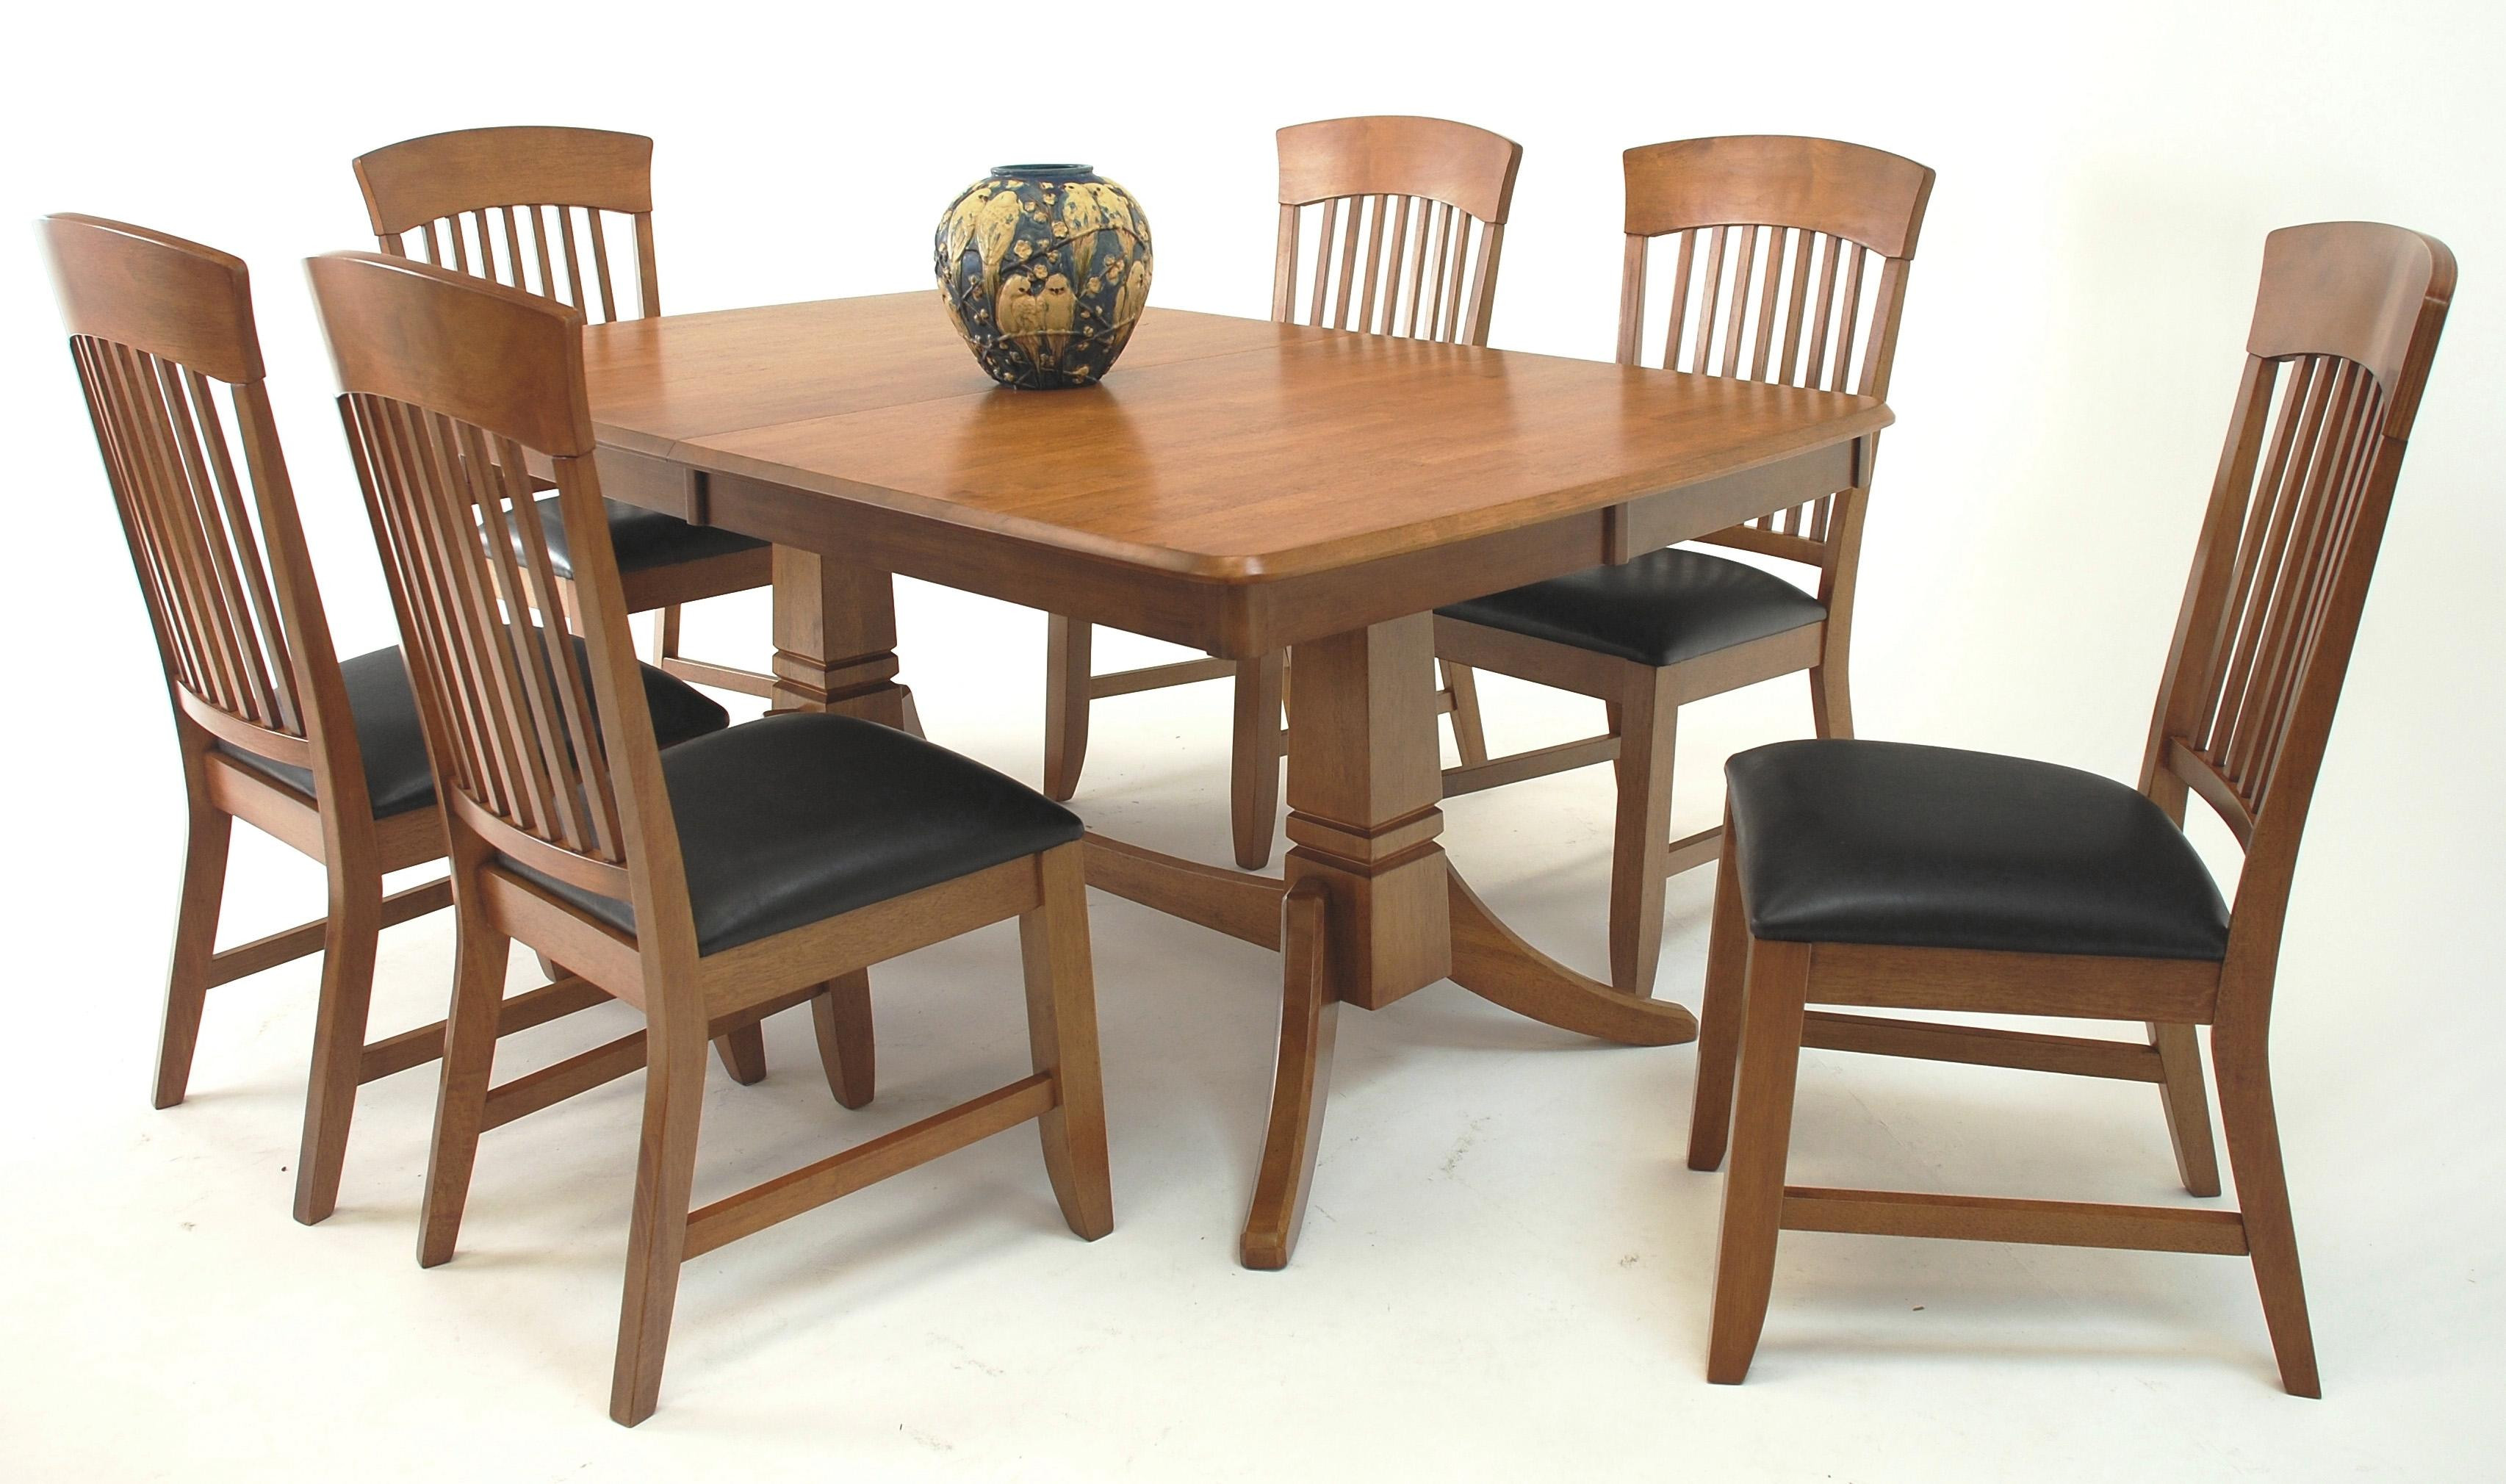 Best ideas about Table And Chair Set . Save or Pin Chair And Table Set Now.